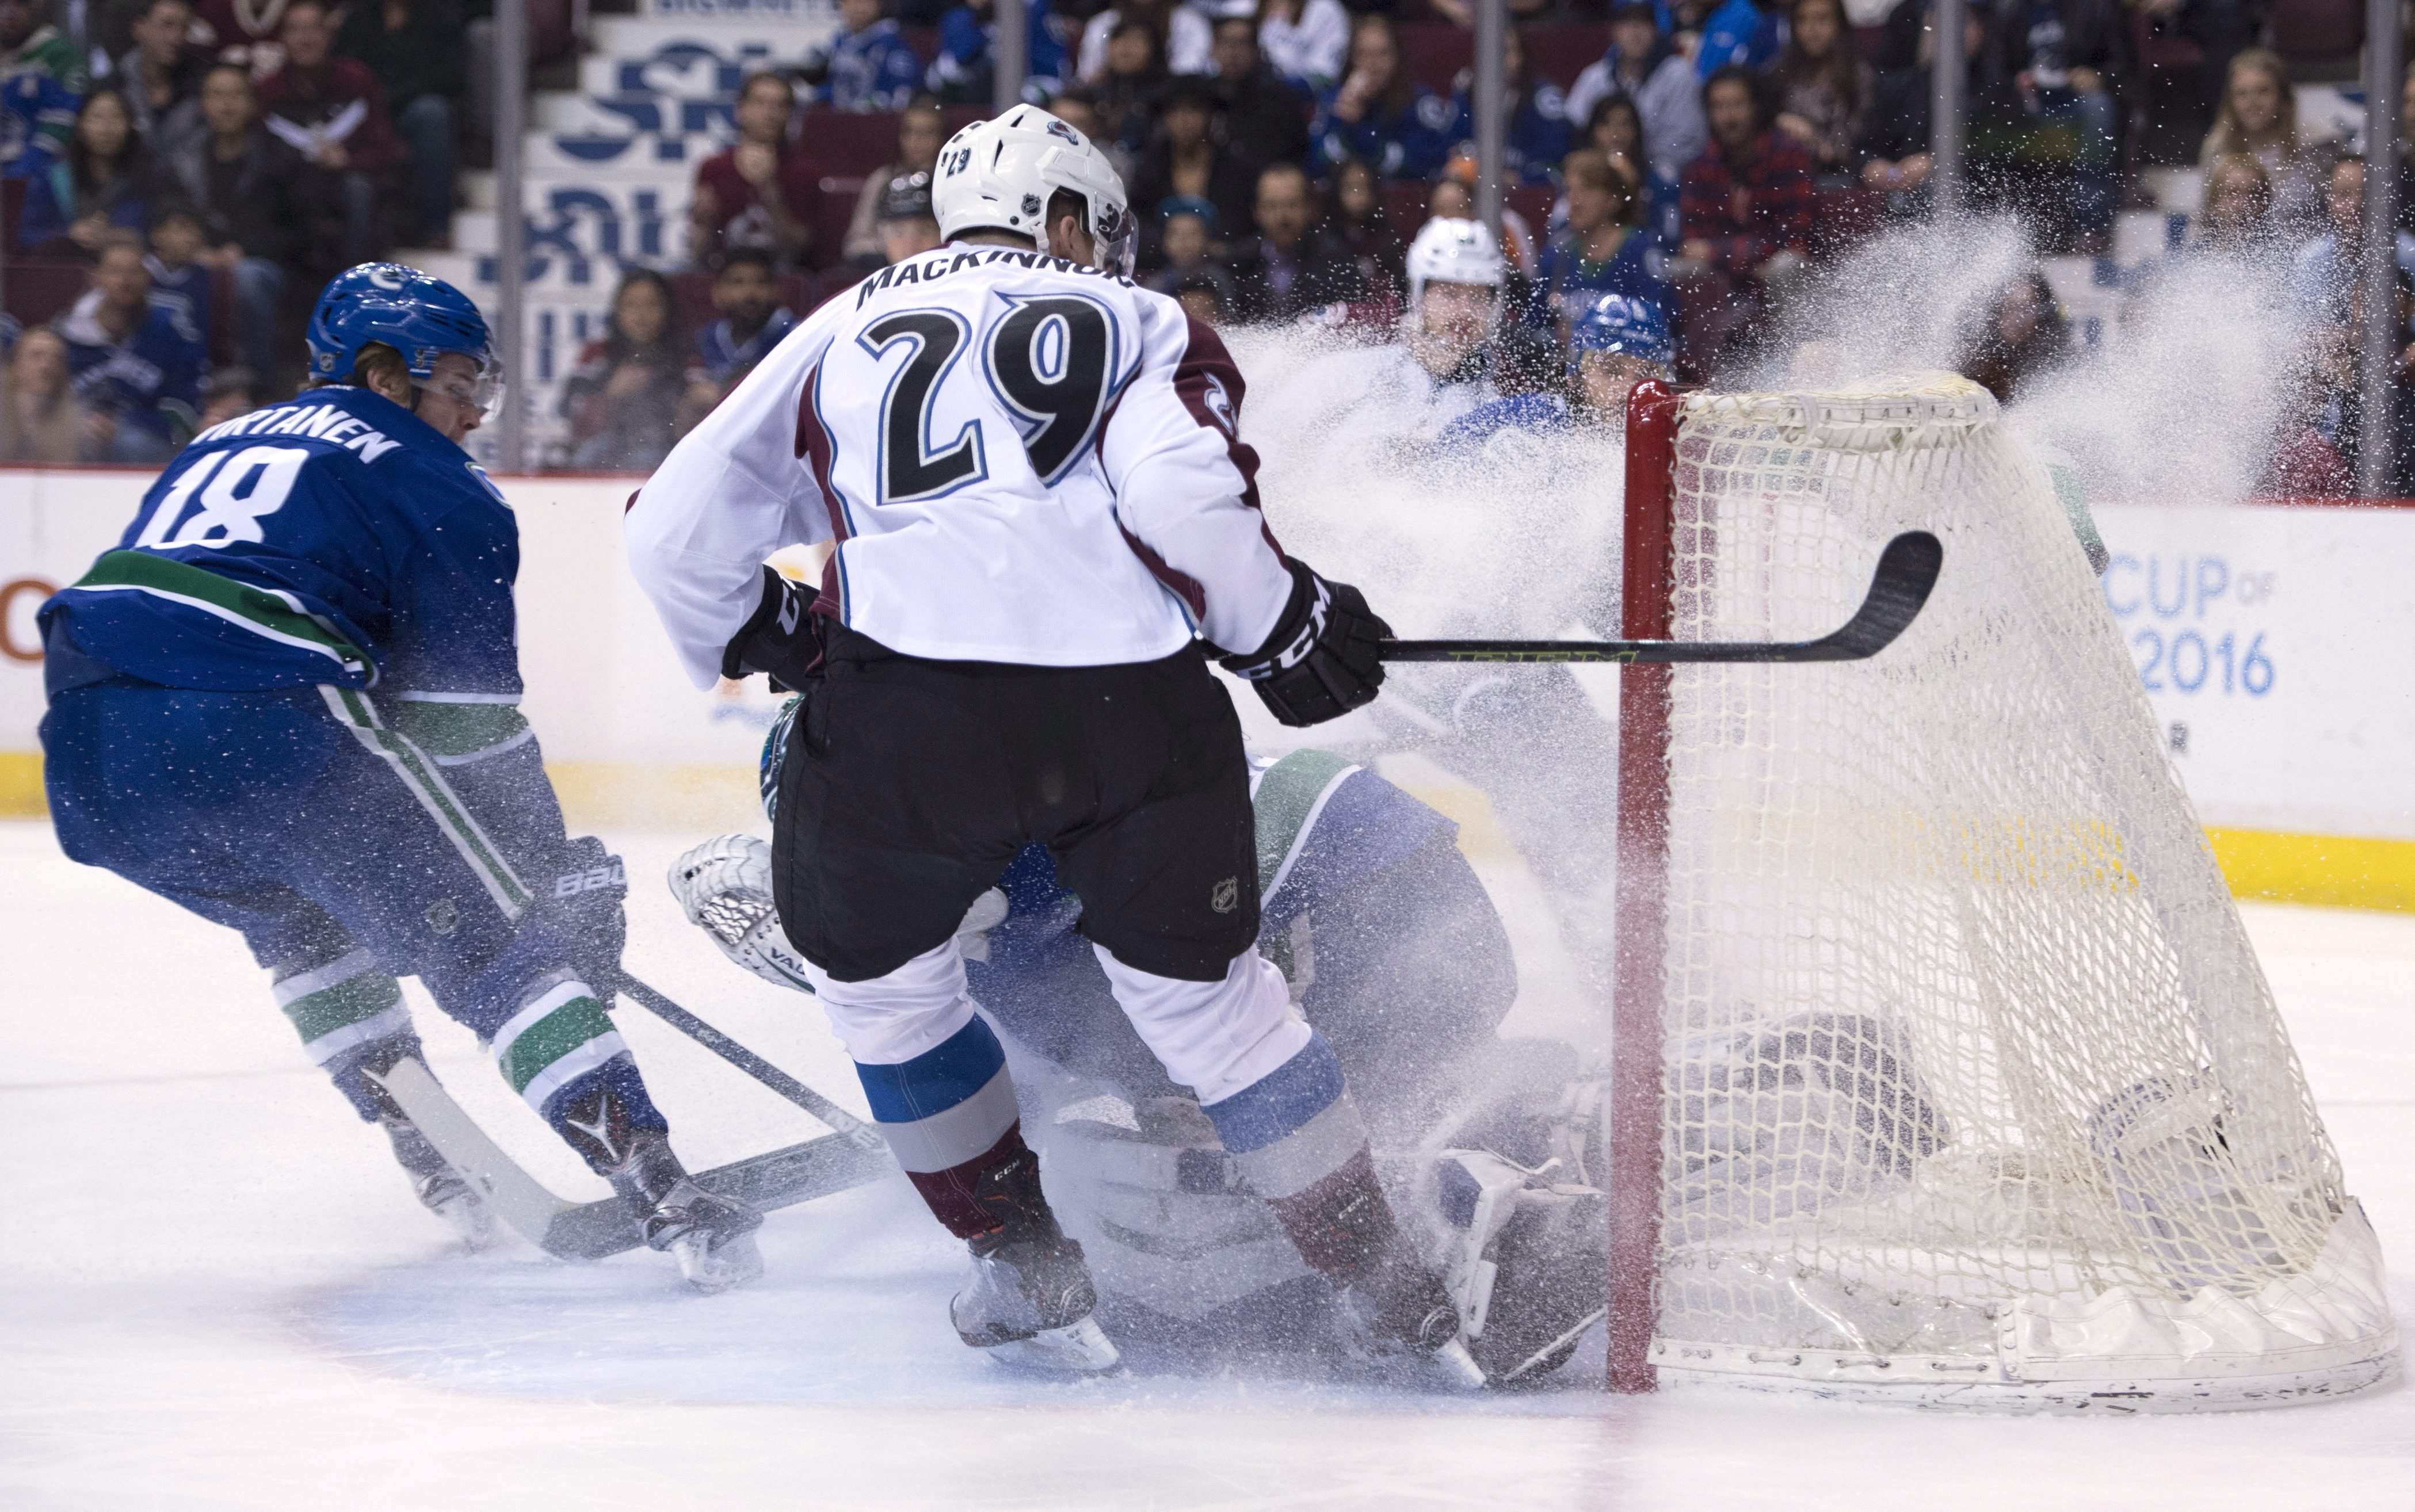 Vancouver Canucks goalie Ryan Miller (30) gets sprayed with ice shavings from Colorado Avalanche center Nathan MacKinnon (29) as Canucks right wing Jake Virtanen (18) watches during the first period of an NHL hockey game Wednesday, March 16, 2016, in Vanc